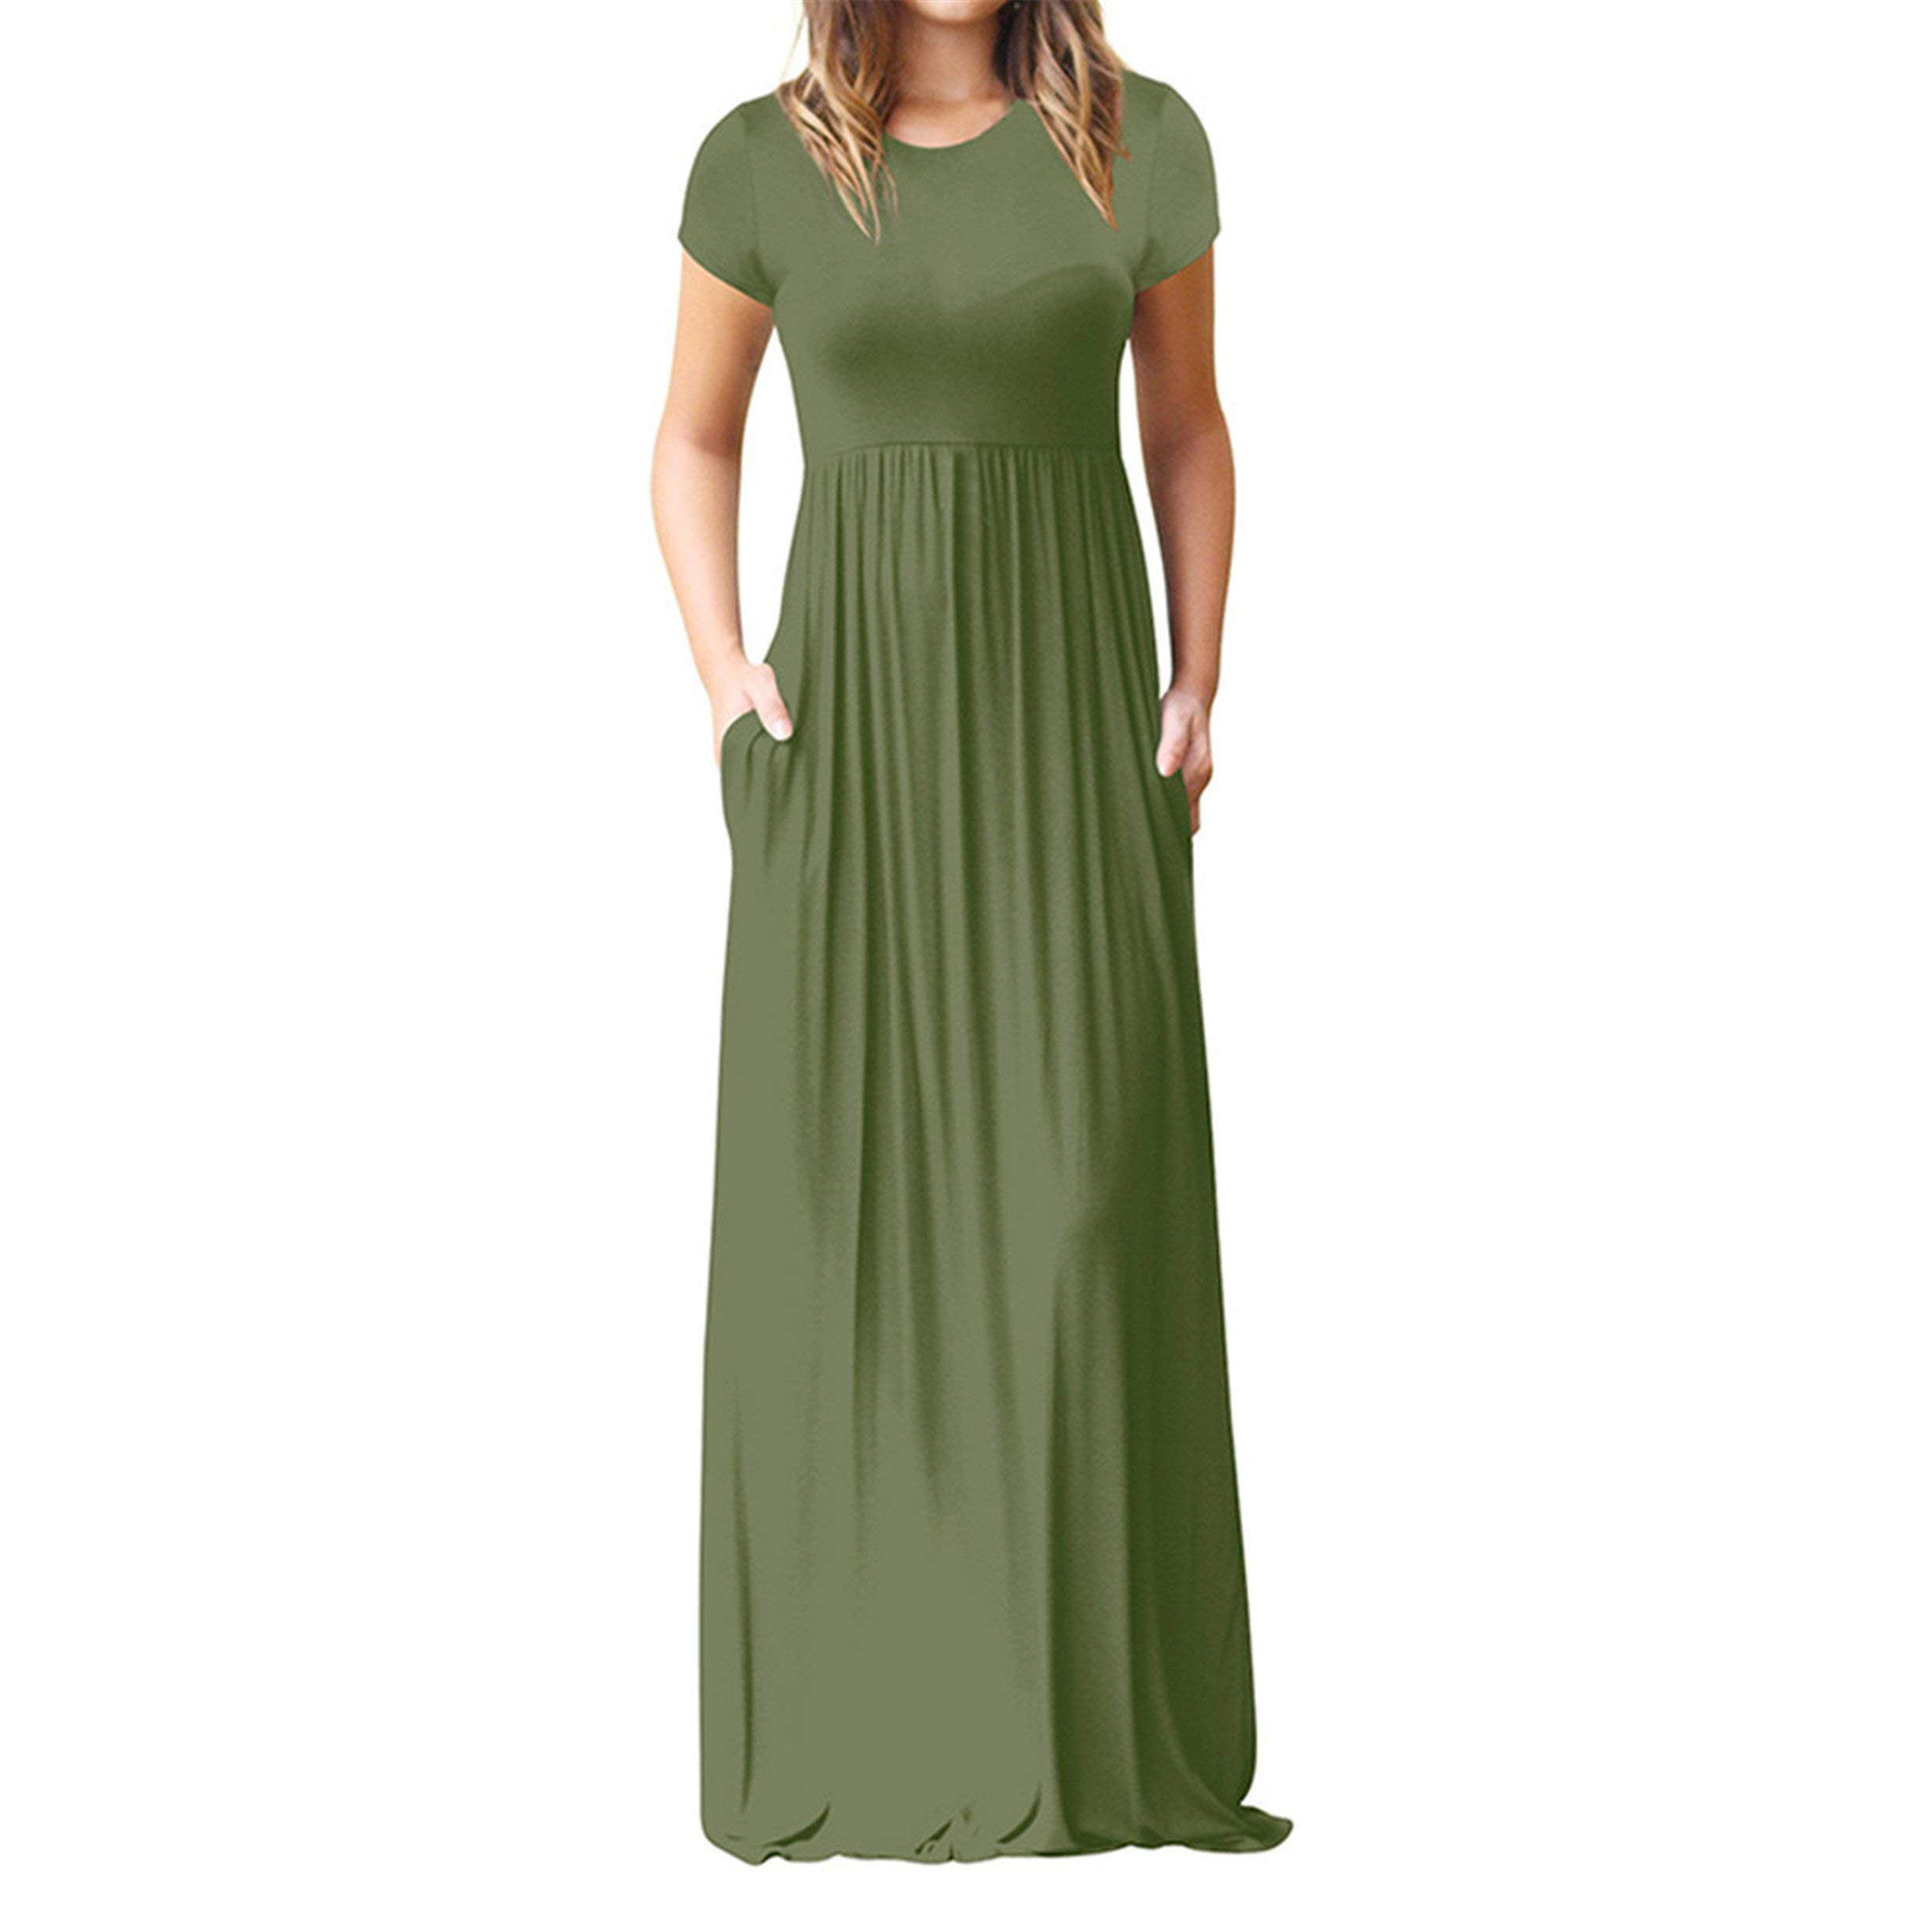 Londony Hot ! Women's Short Sleeve Casual Swing Tunic T Shirt Dress with Pocket Maxi Dress (Green ღ, XL) by Londony